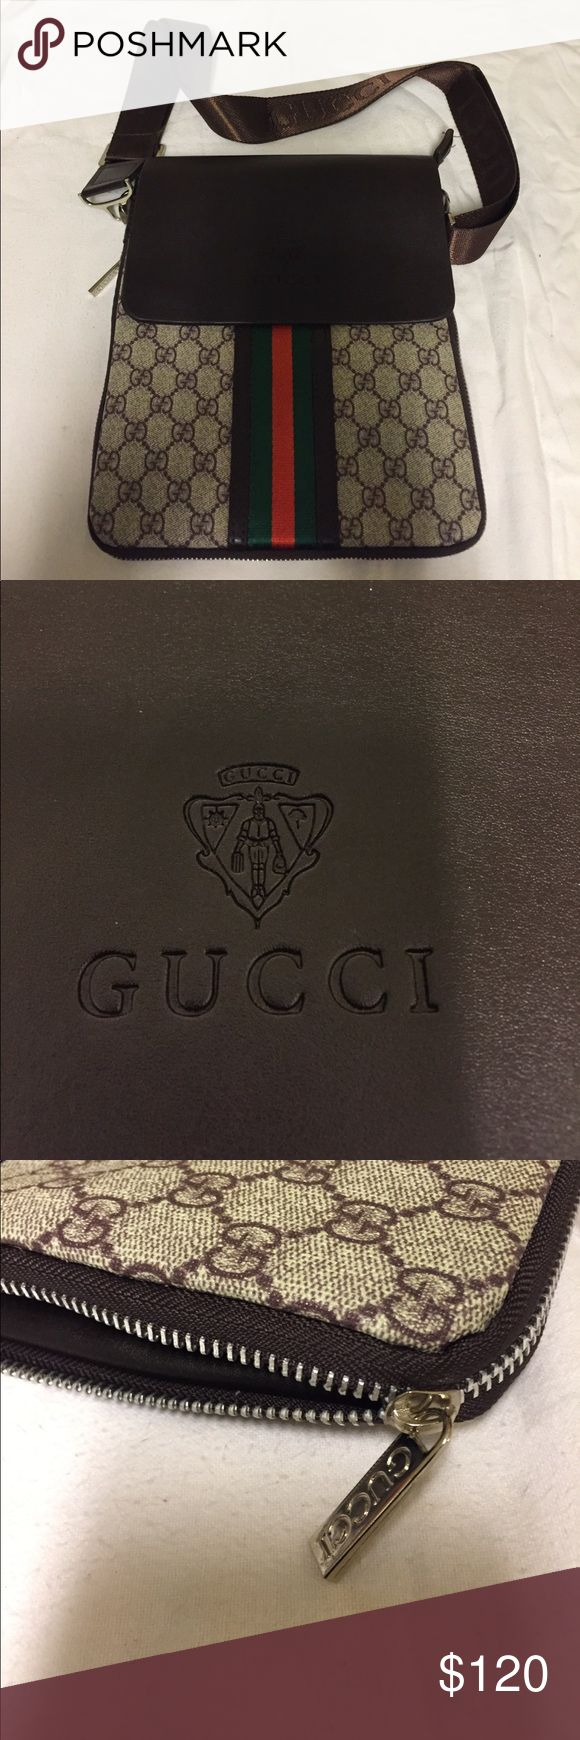 Gucci bag Gucci messenger bag! Gucci Bags Crossbody Bags